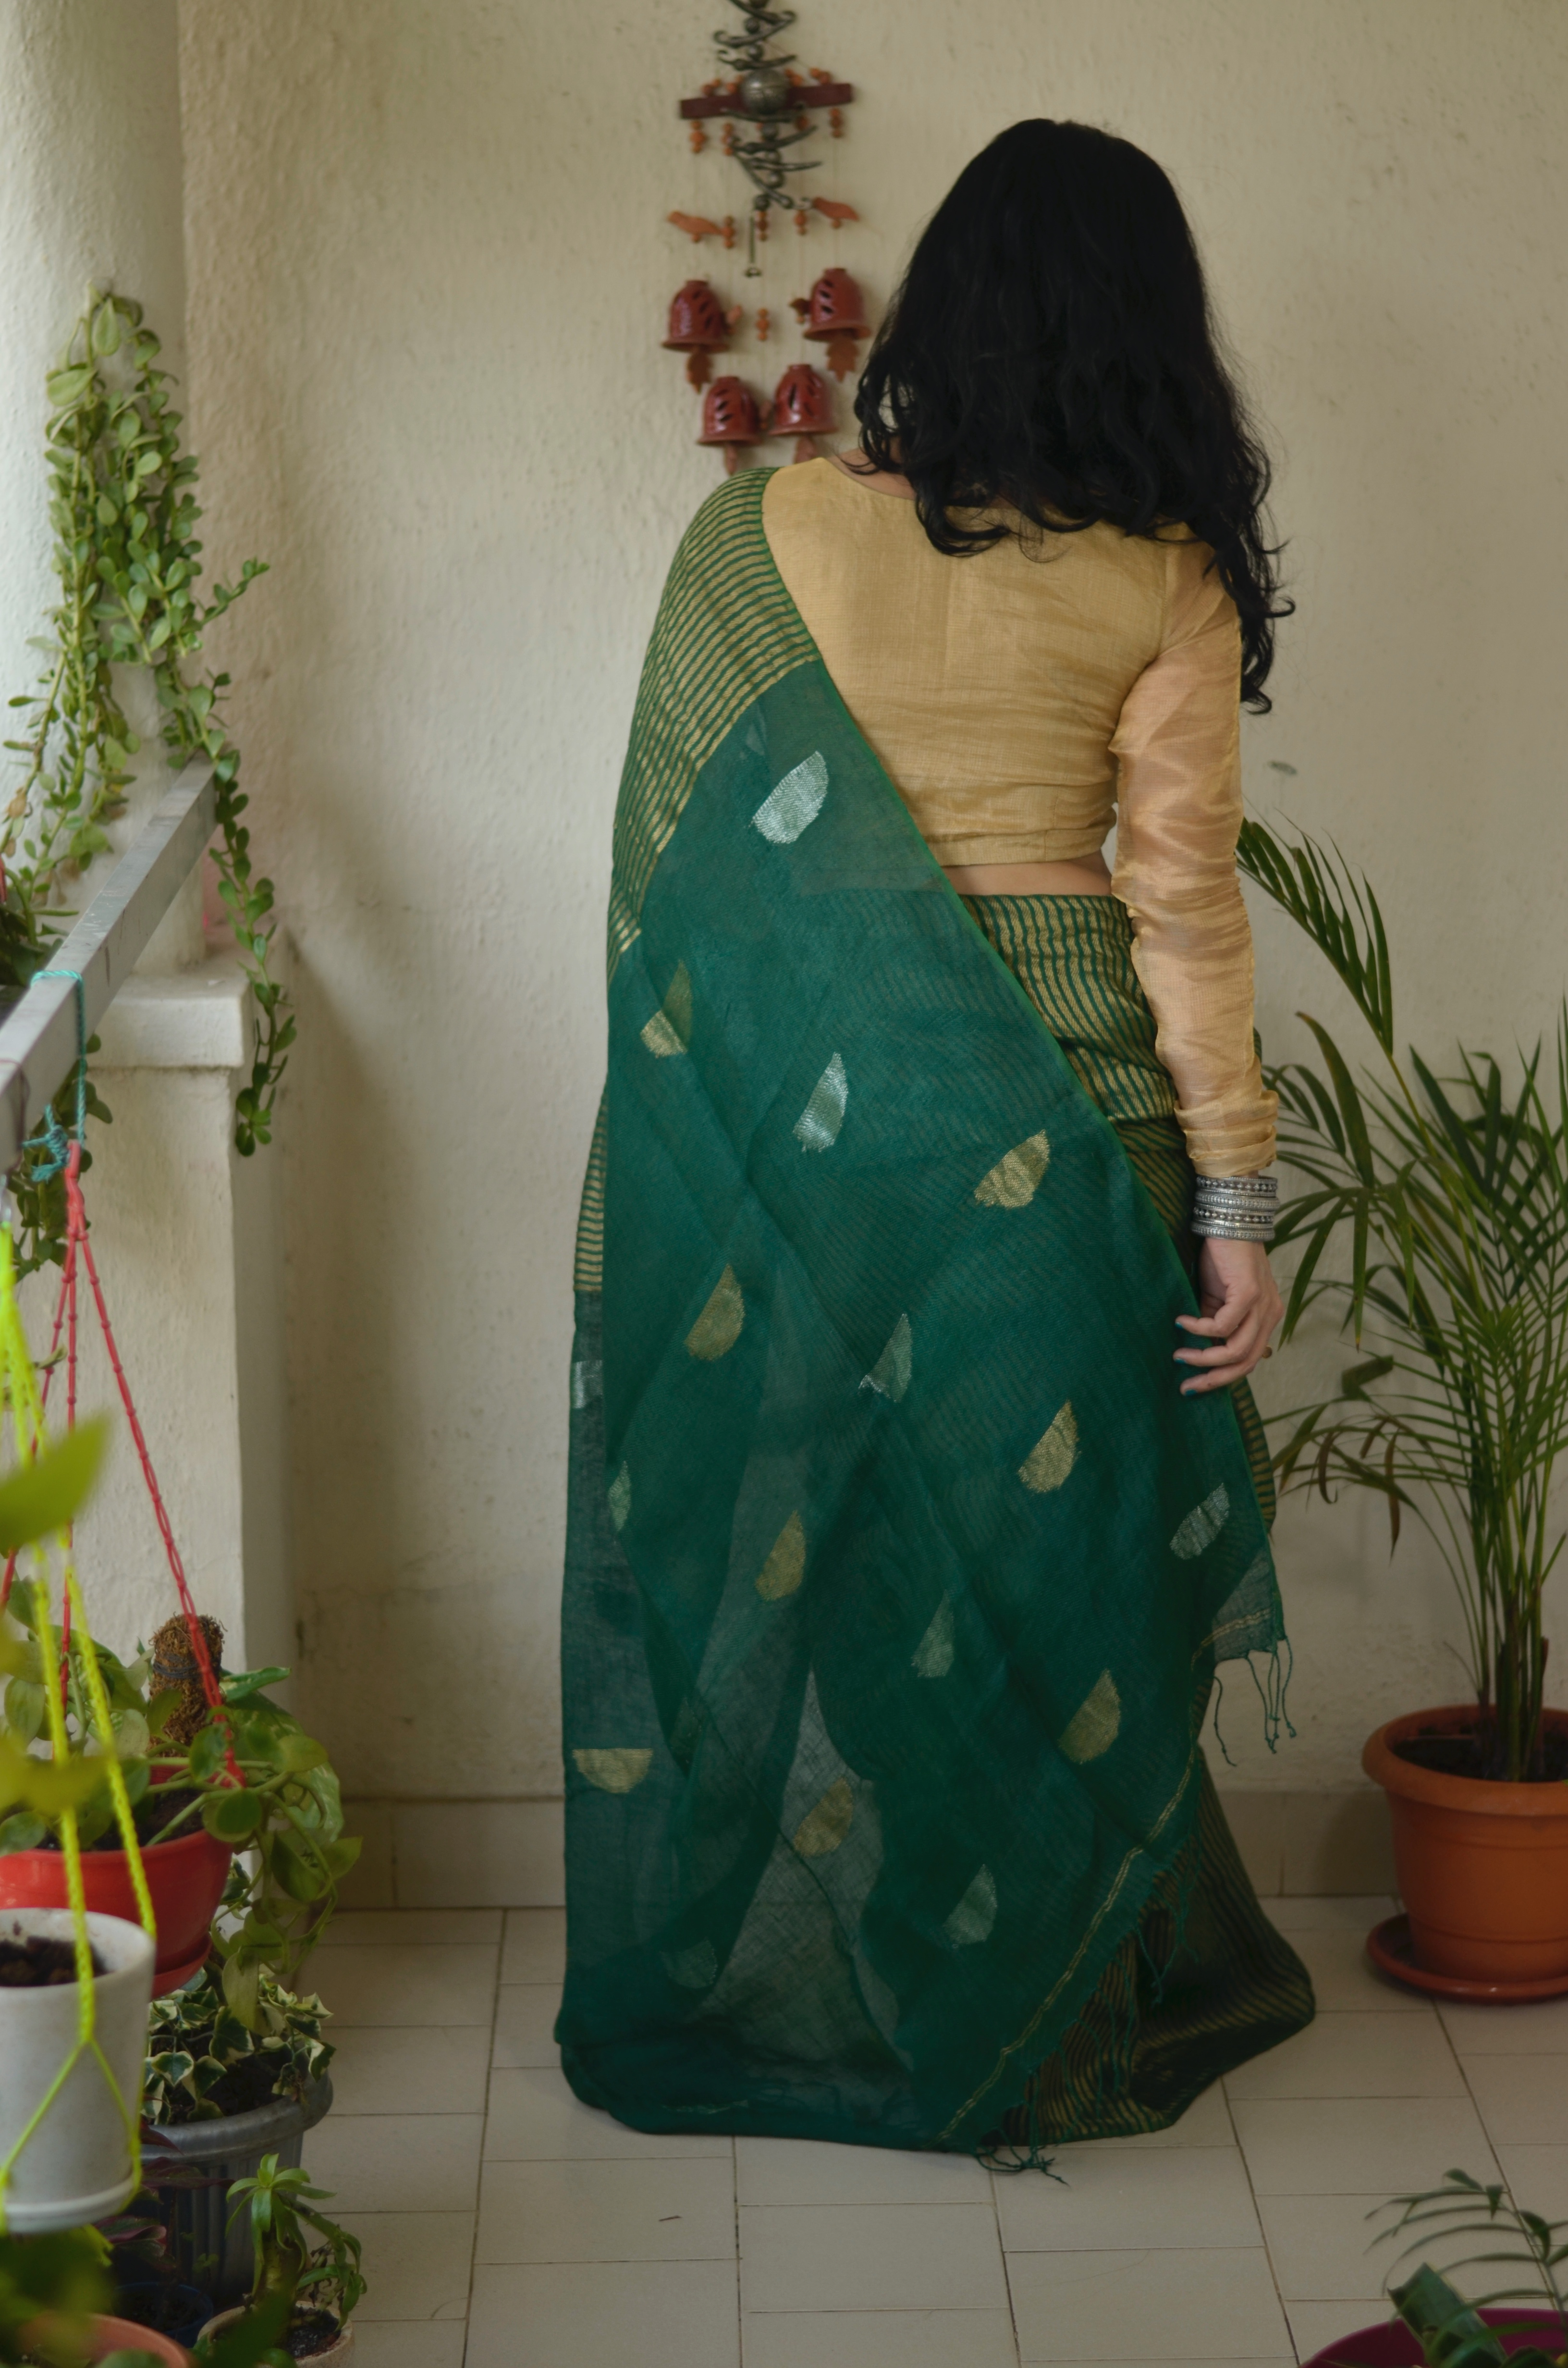 Handloom Twill linen saree blended with tissue blended with jamdani motifs.